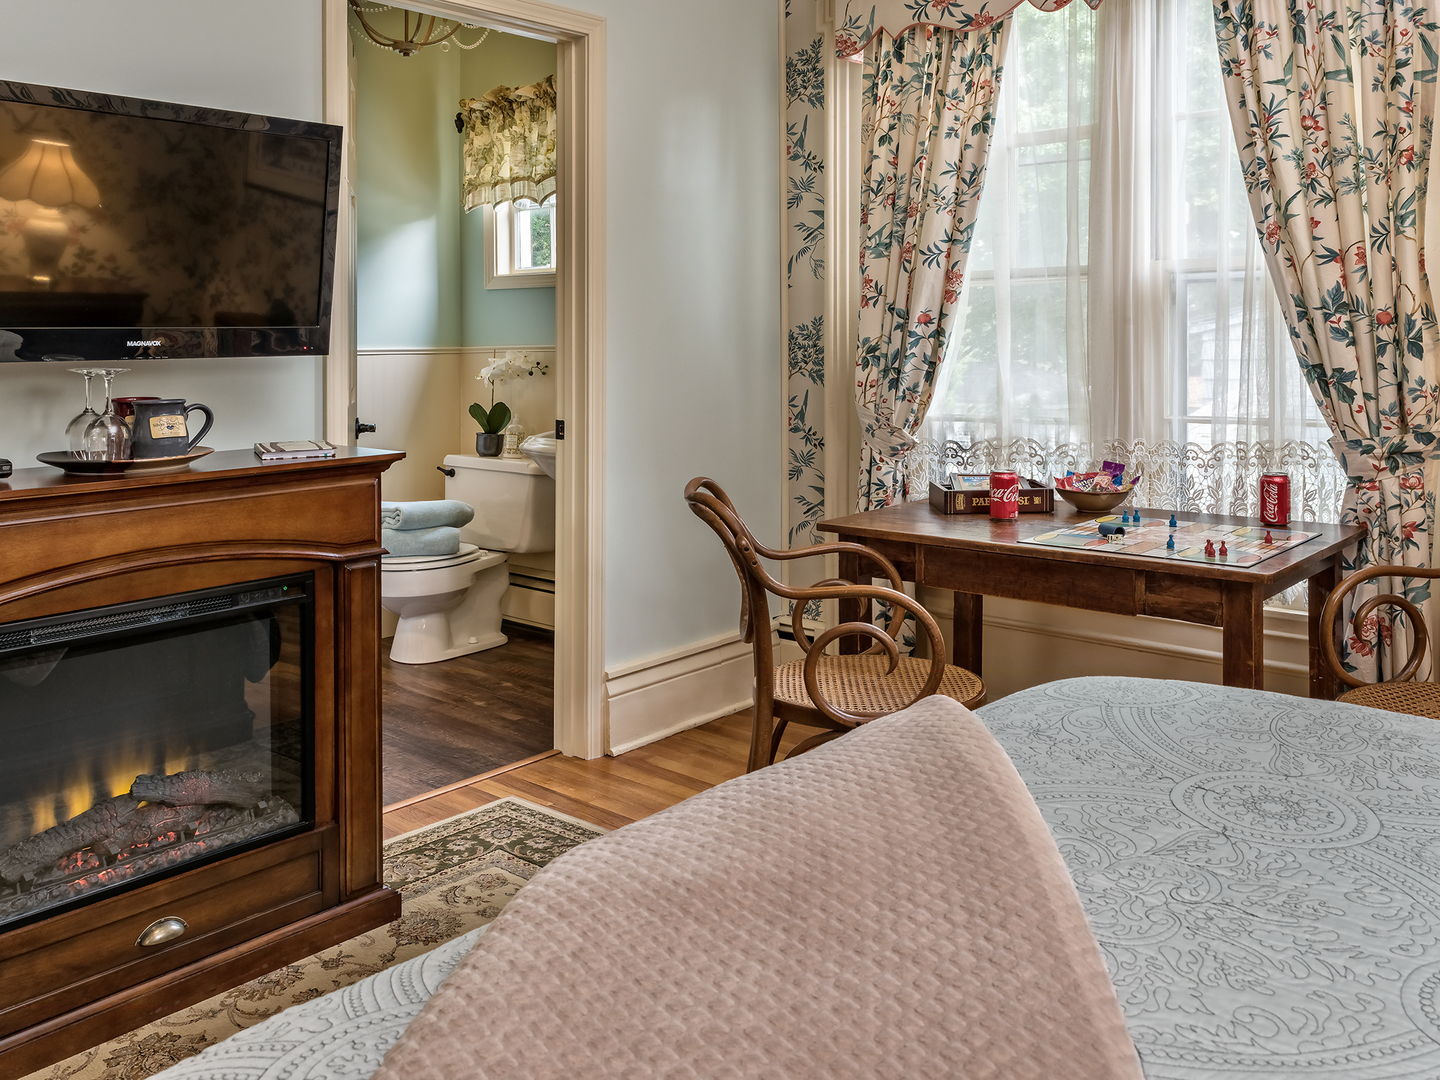 A living room filled with furniture and a fire place at Silver Heart Inn & Cottages.